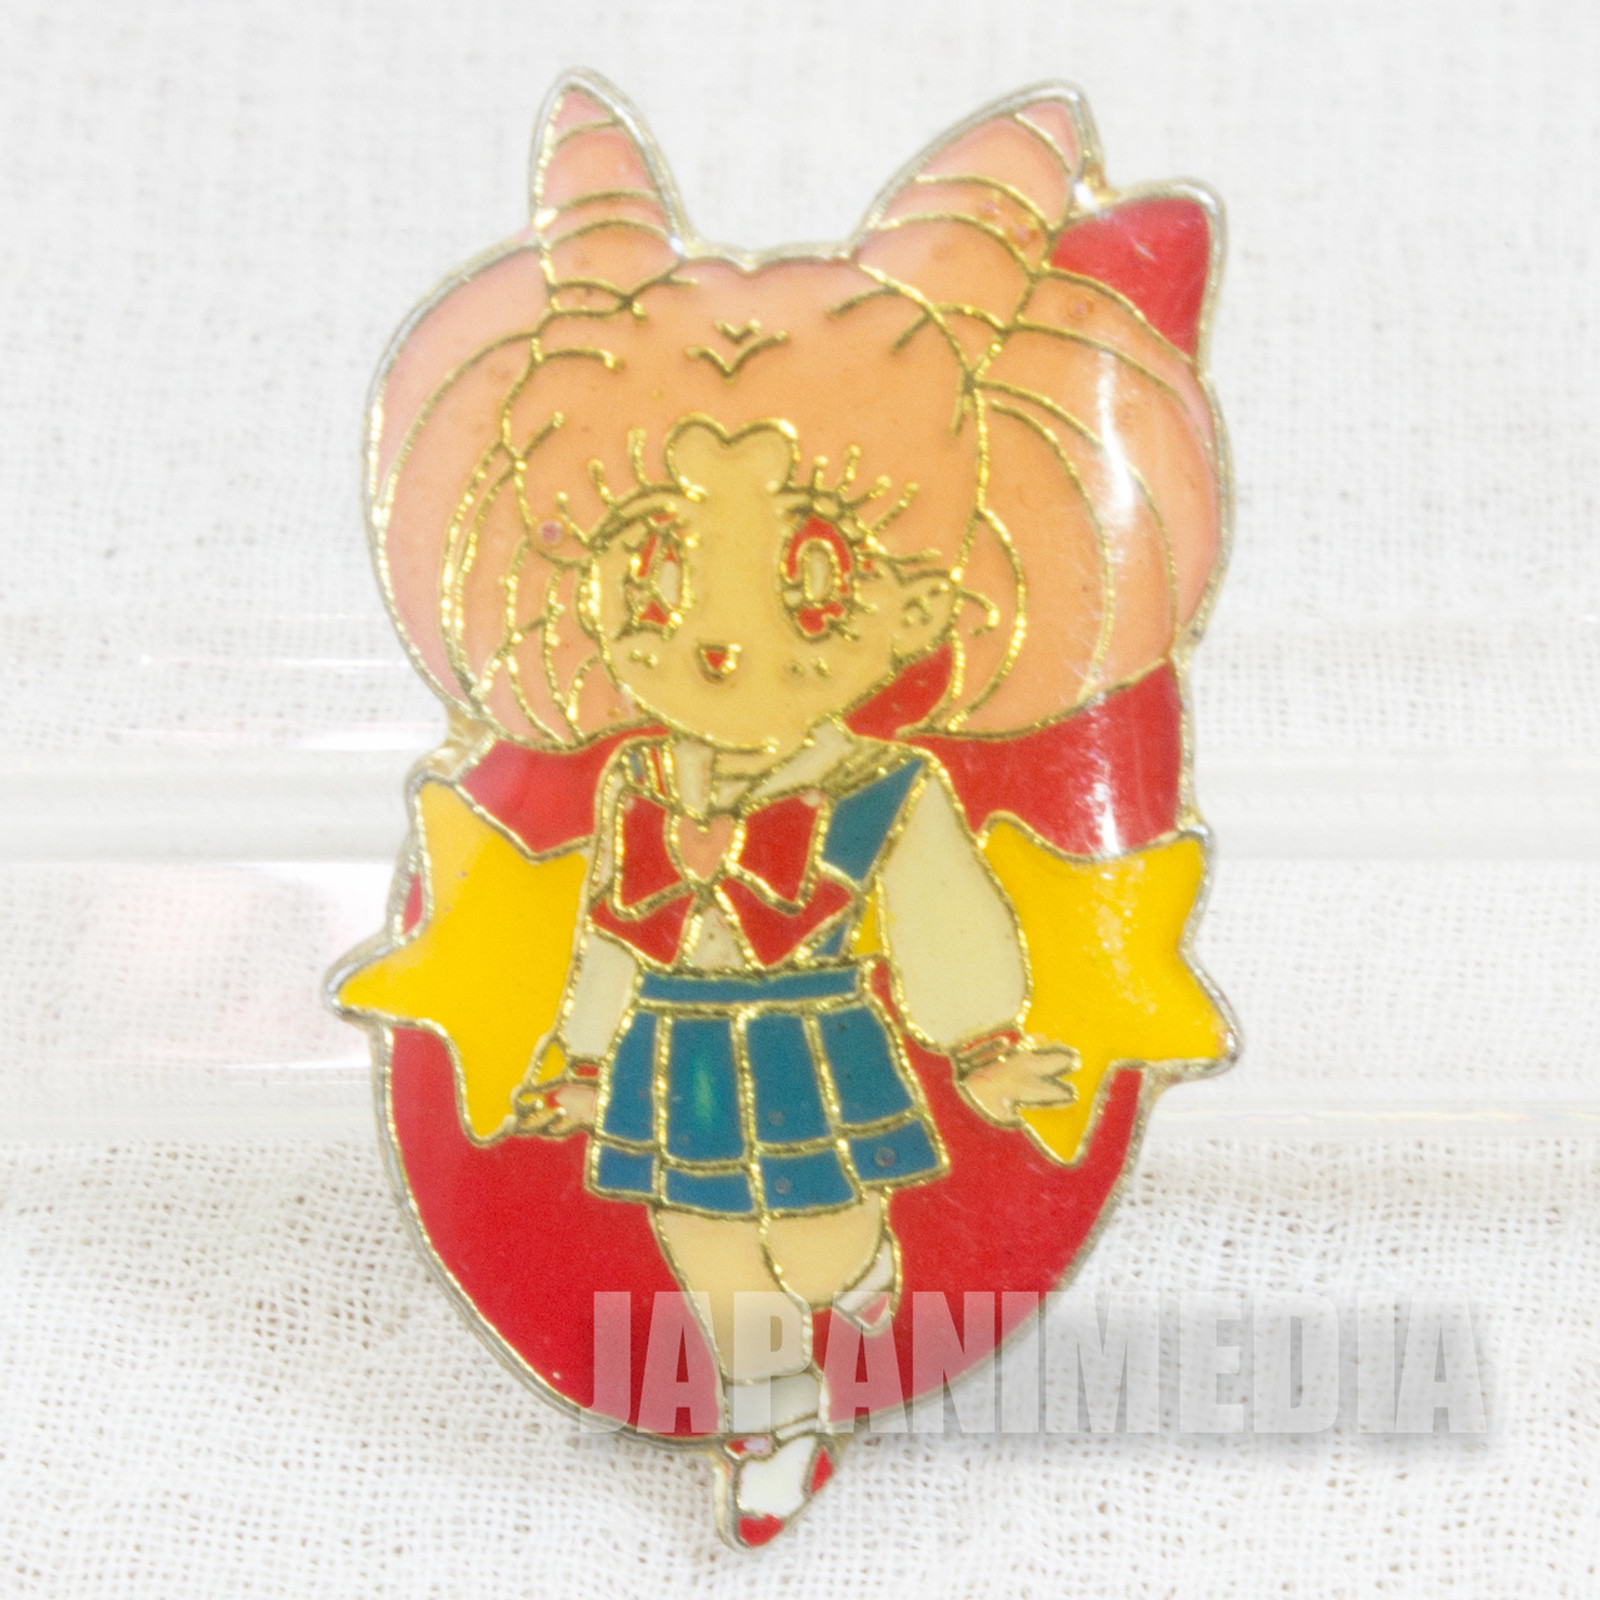 Sailor Moon Chibiusa (Sailor Chibi Moon) Metal Pins Badge JAPAN ANIME 2